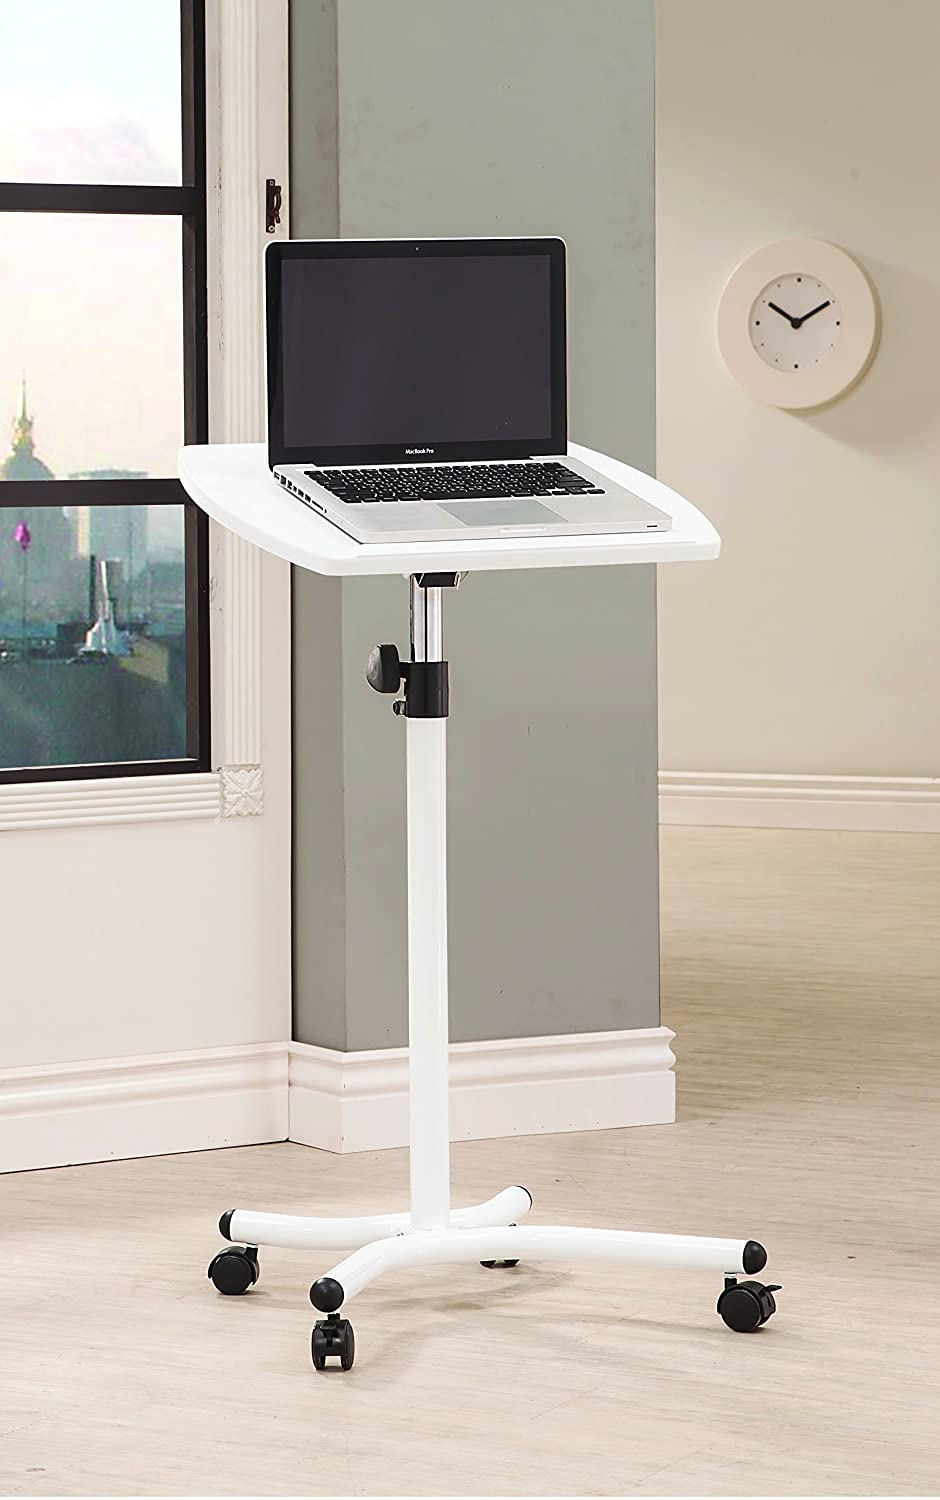 Coaster Home Furnishings 800484 Laptop Stand with Casters, White by Coaster Home Furnishings B00KQGDN4S